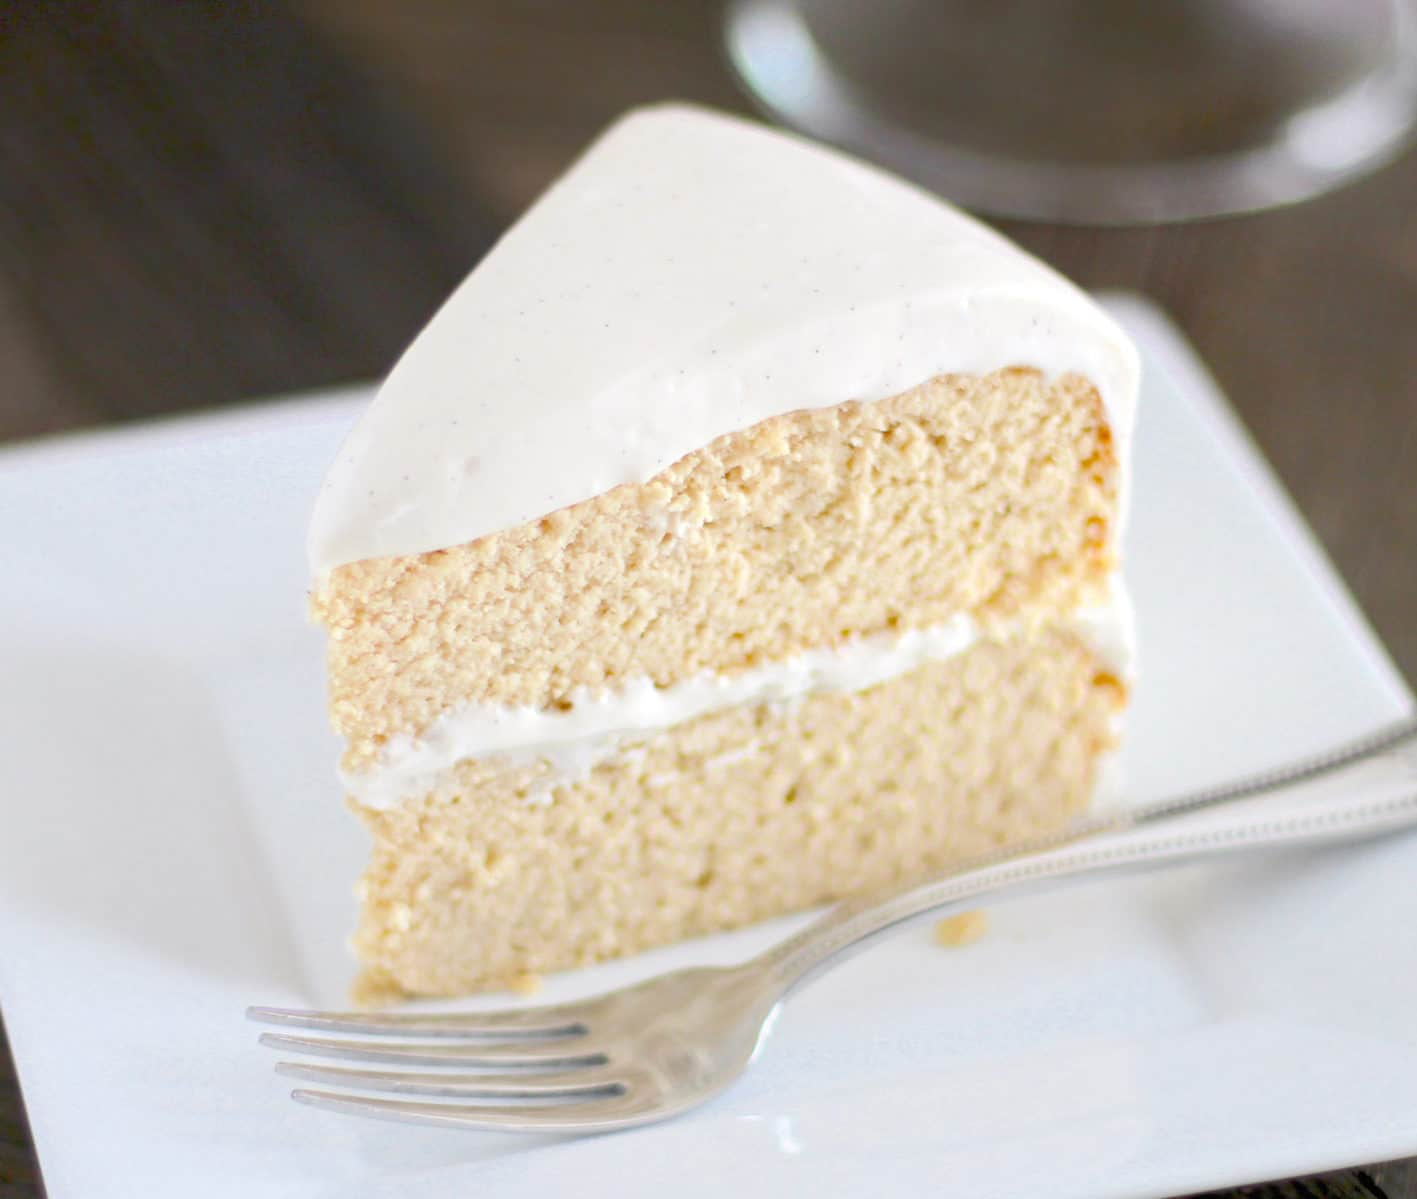 Healthy Low Carb And Gluten Free Vanilla Cake With Bean Cream Cheese Frosting